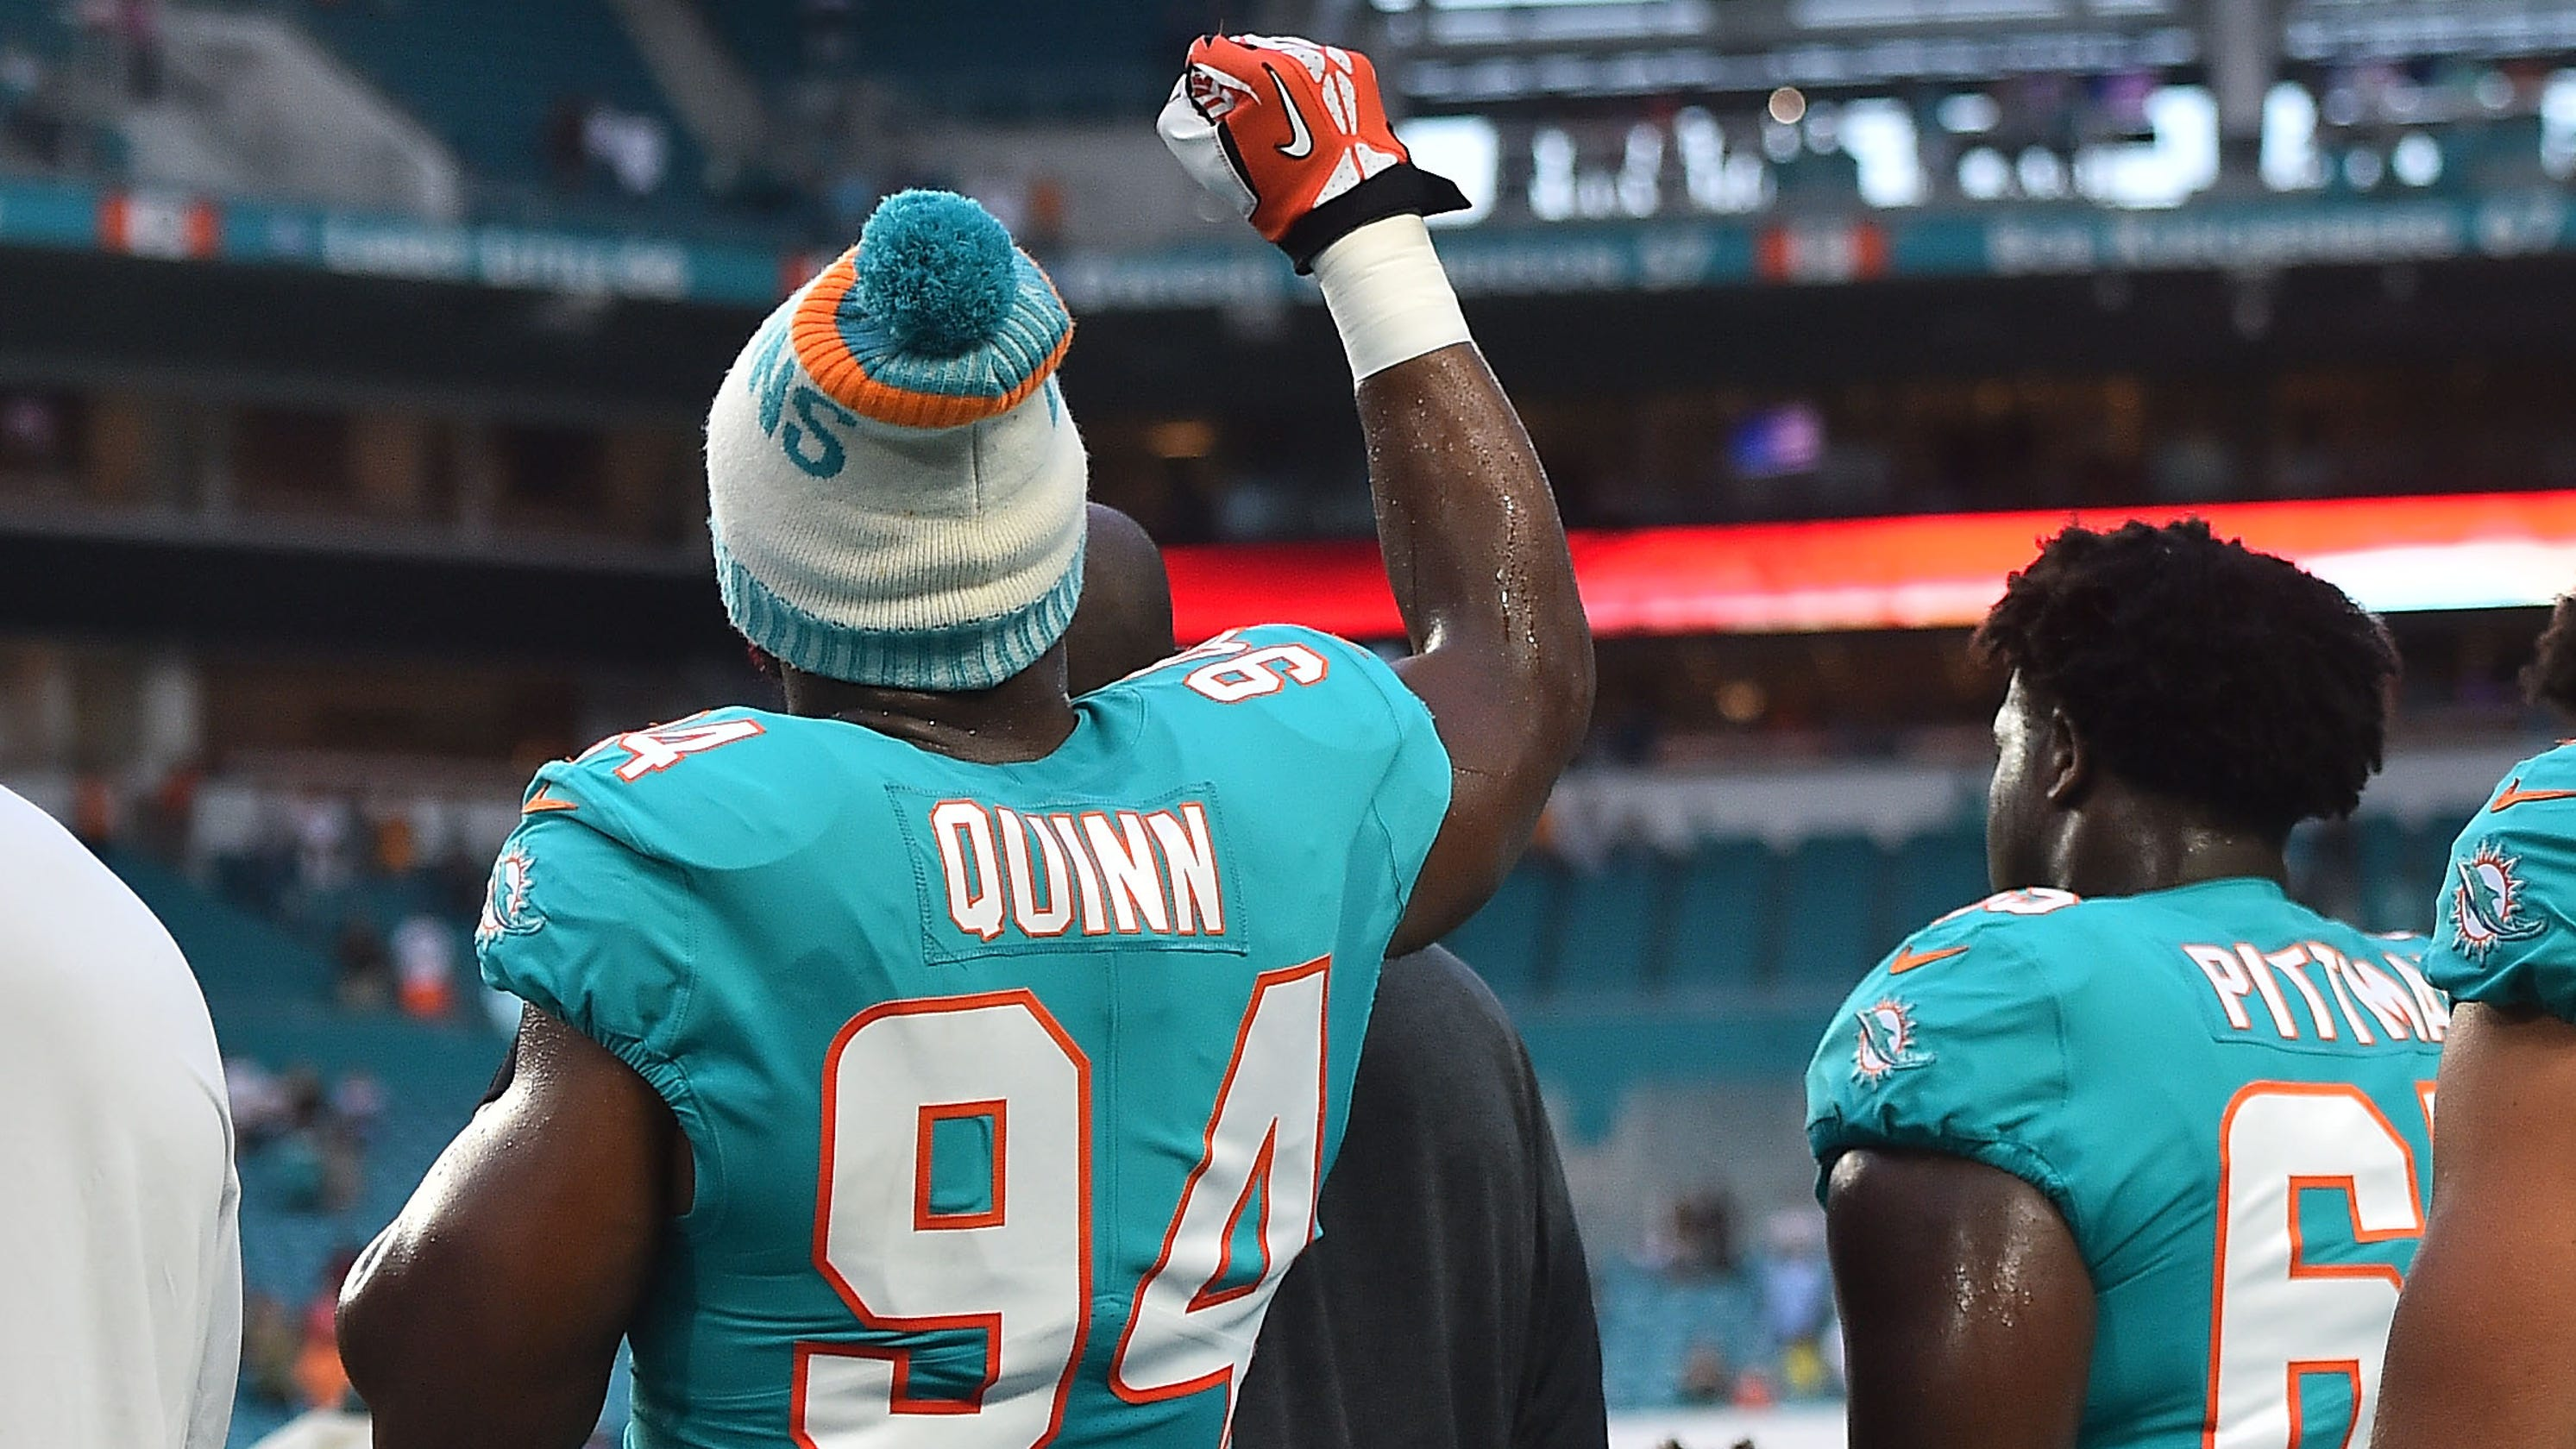 Cool Pictures Of Nfl Players Search: Donald Trump Tweets NFL Players: 'Be Happy, Be Cool